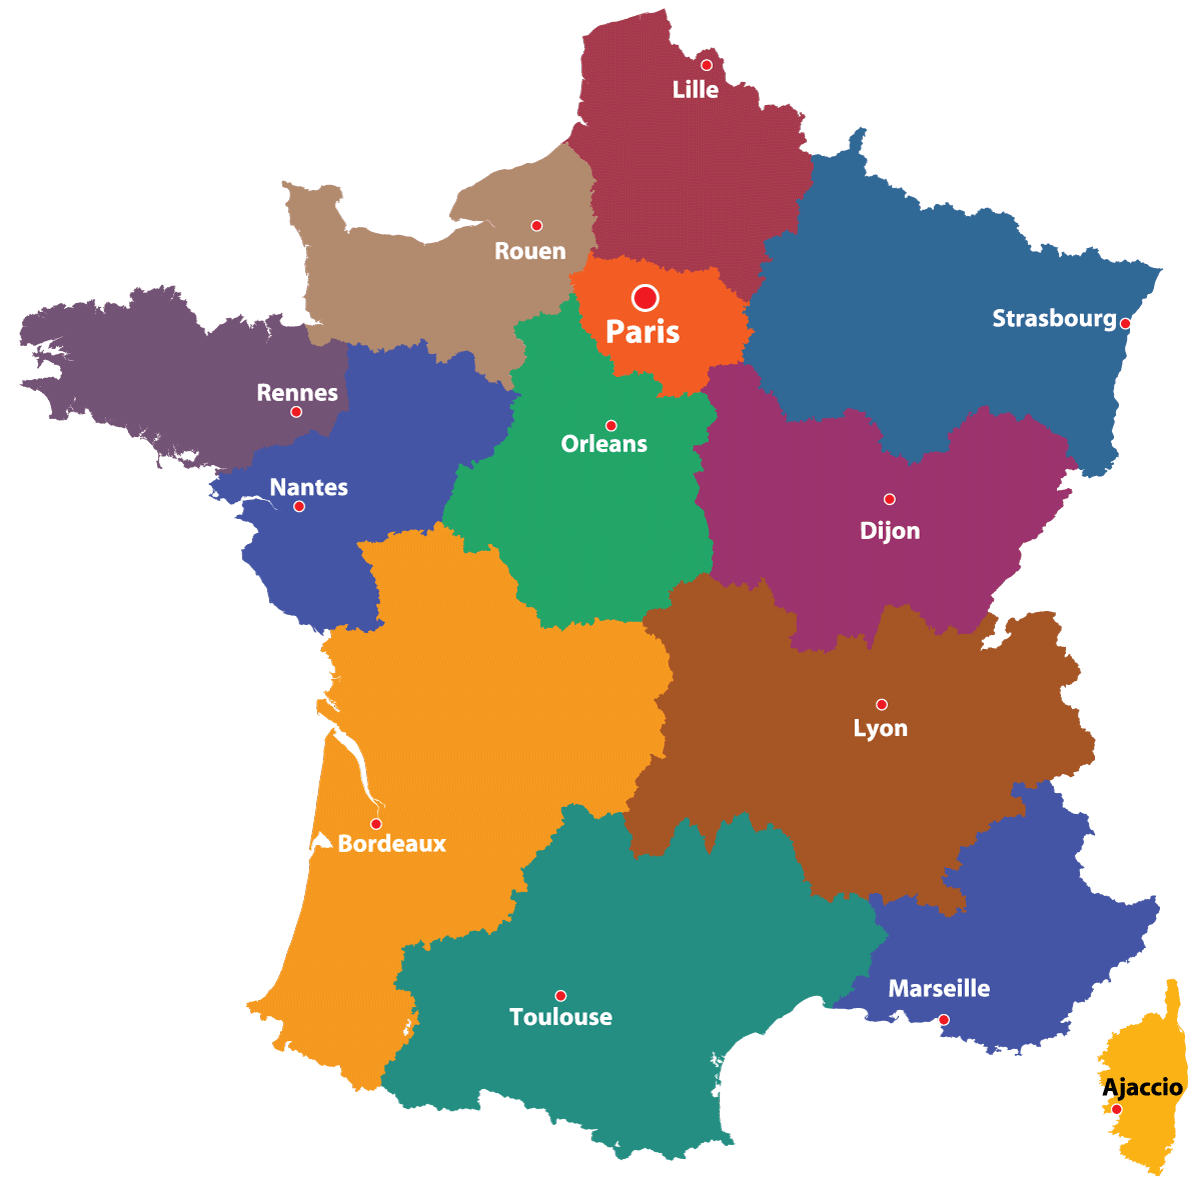 Map Of France Showing Lille.Maps Of The Regions Of France